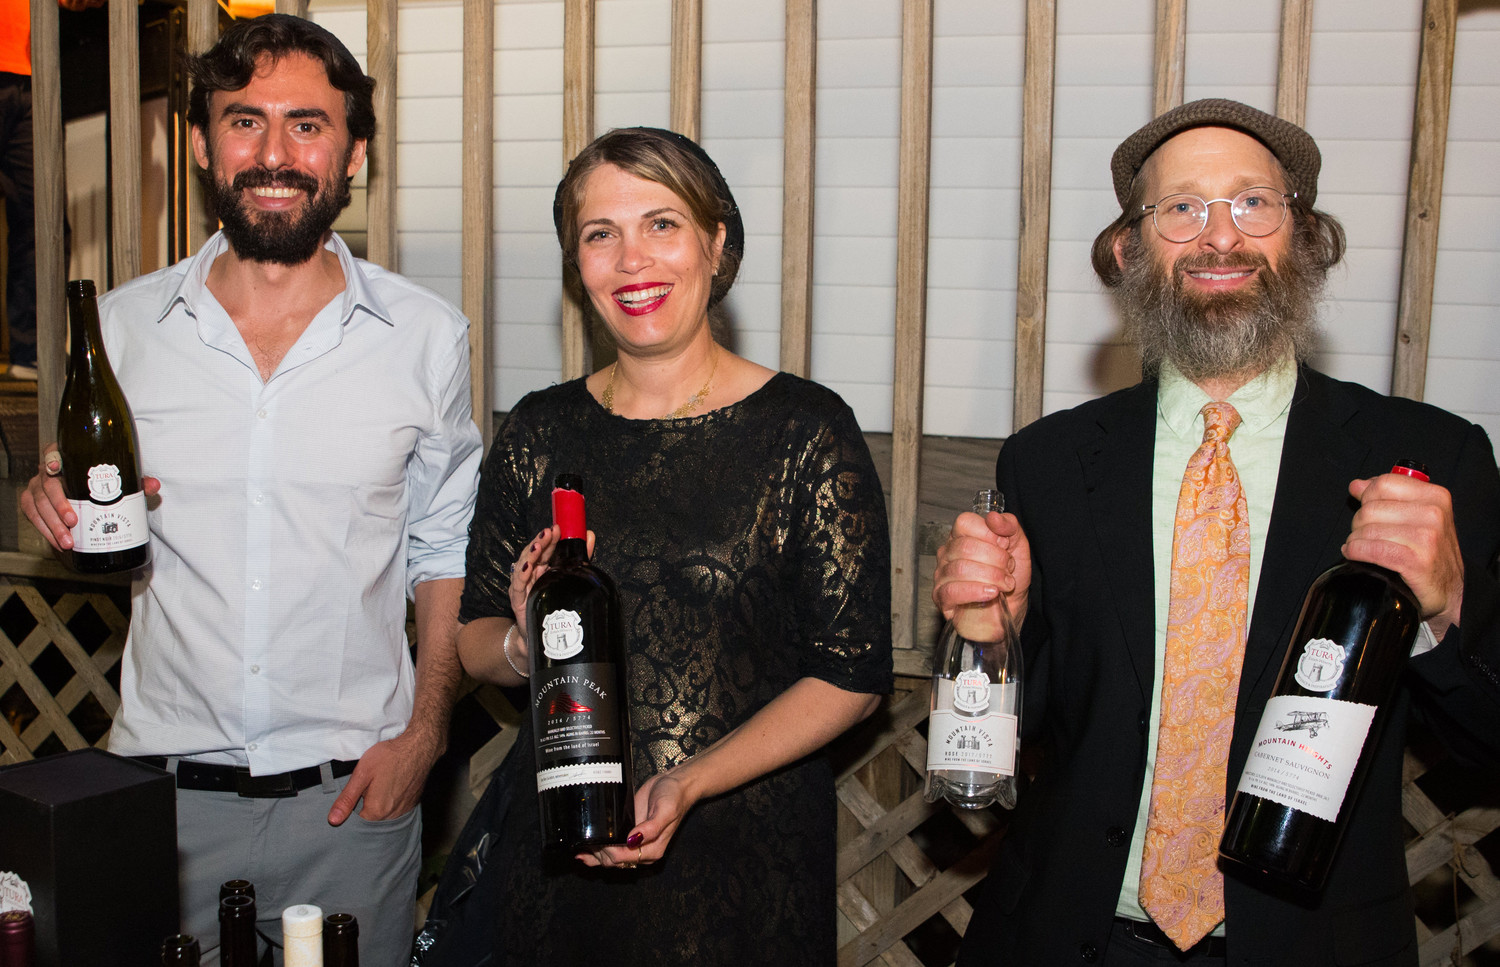 At One Israel Fund's West Hempstead BBQ, Vered Ben Sa'adon, winemaker and owner of the Tura Winery in the Shomron, is flanked by Yehoshua Werth and Tzvi Greg Lauren from Heart of Israel Wines.